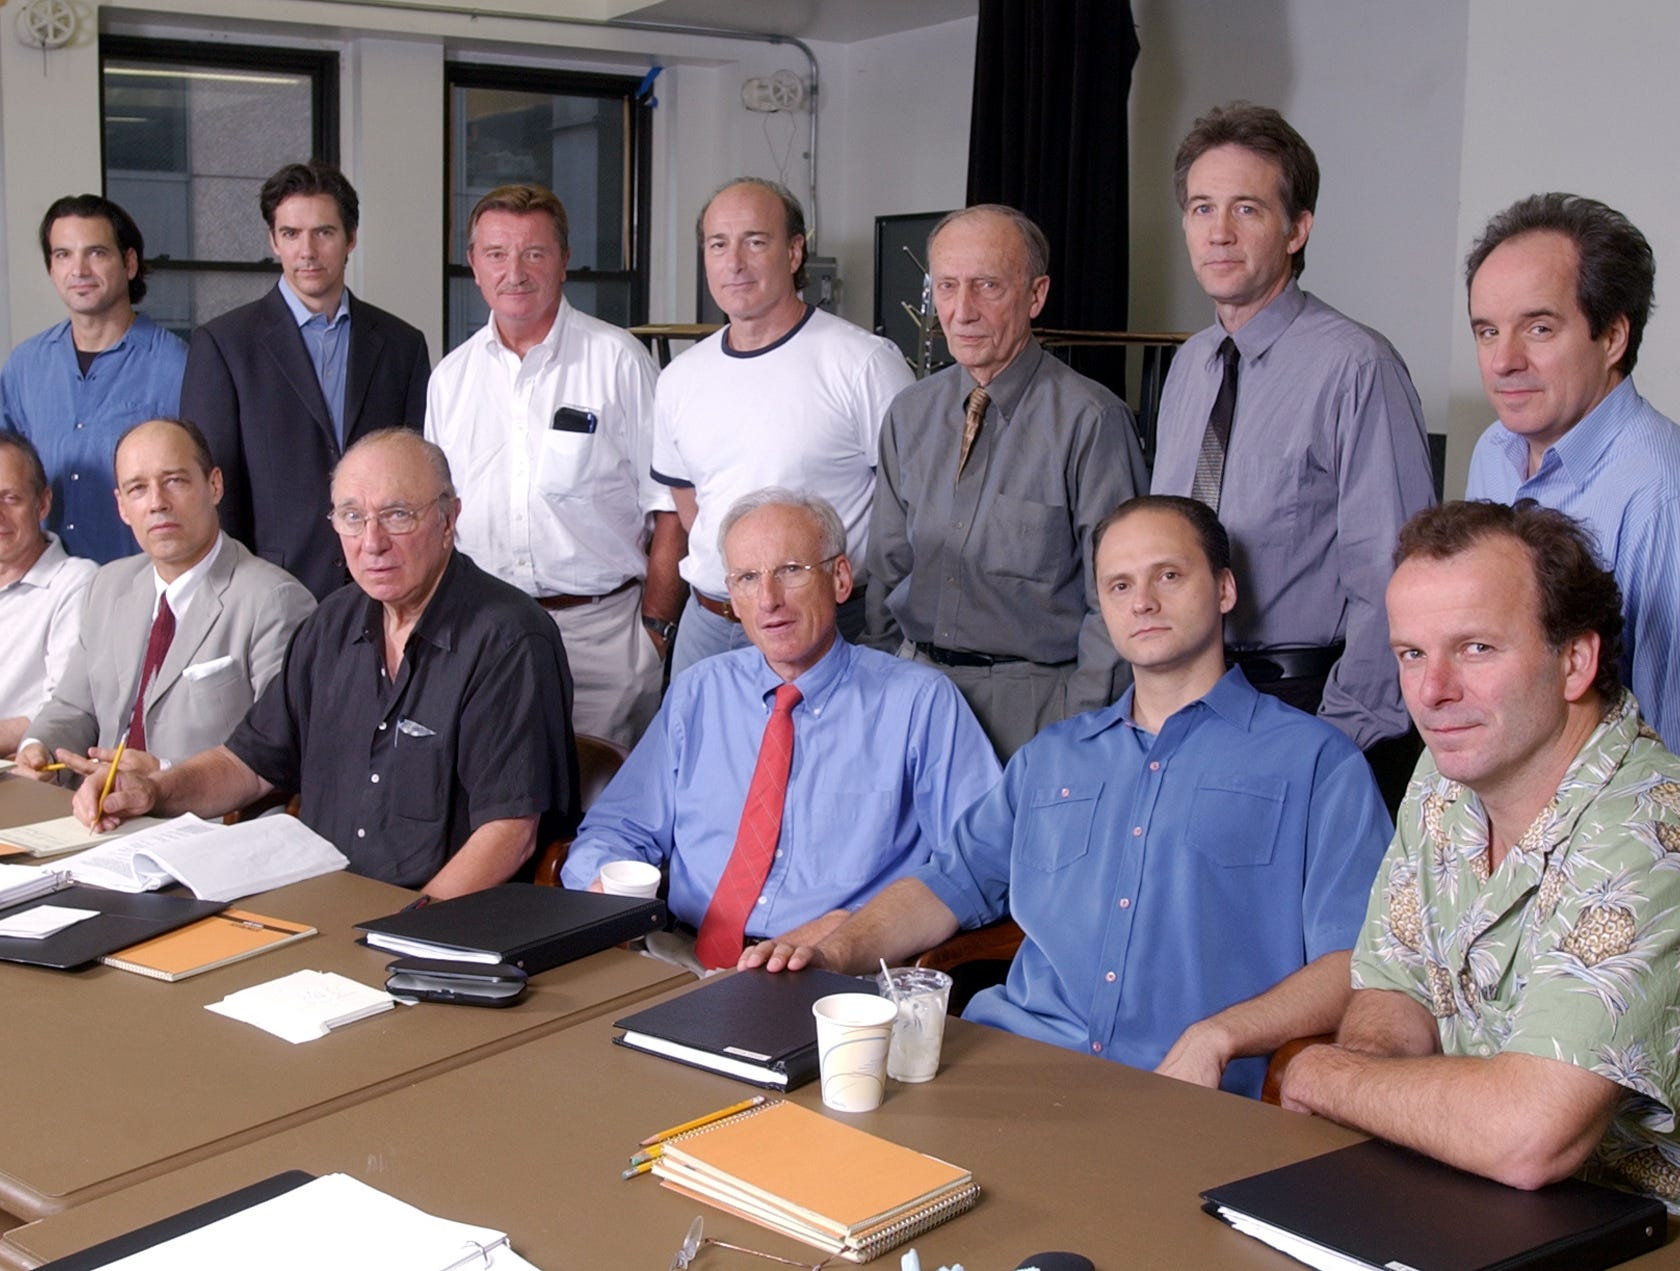 "The cast of the Roundabout Theatre's Broadway production of ""Twelve Angry Men"" pose for a photograph at a New York rehearsal studio Sept. 14, 2004. They are, back row from left, Matte Osian, Adam Trese, Larry Bryggman, Peter Friedman, Tom Aldredge, Boyd Gaines, and John Pankow. In the front row, from leftt, are Mark Blum, Kevin Greer, Philip Bosco, James Rebhorn, Michael Mastro and Michael Clohessy. (AP Photo/Richard Drew)"